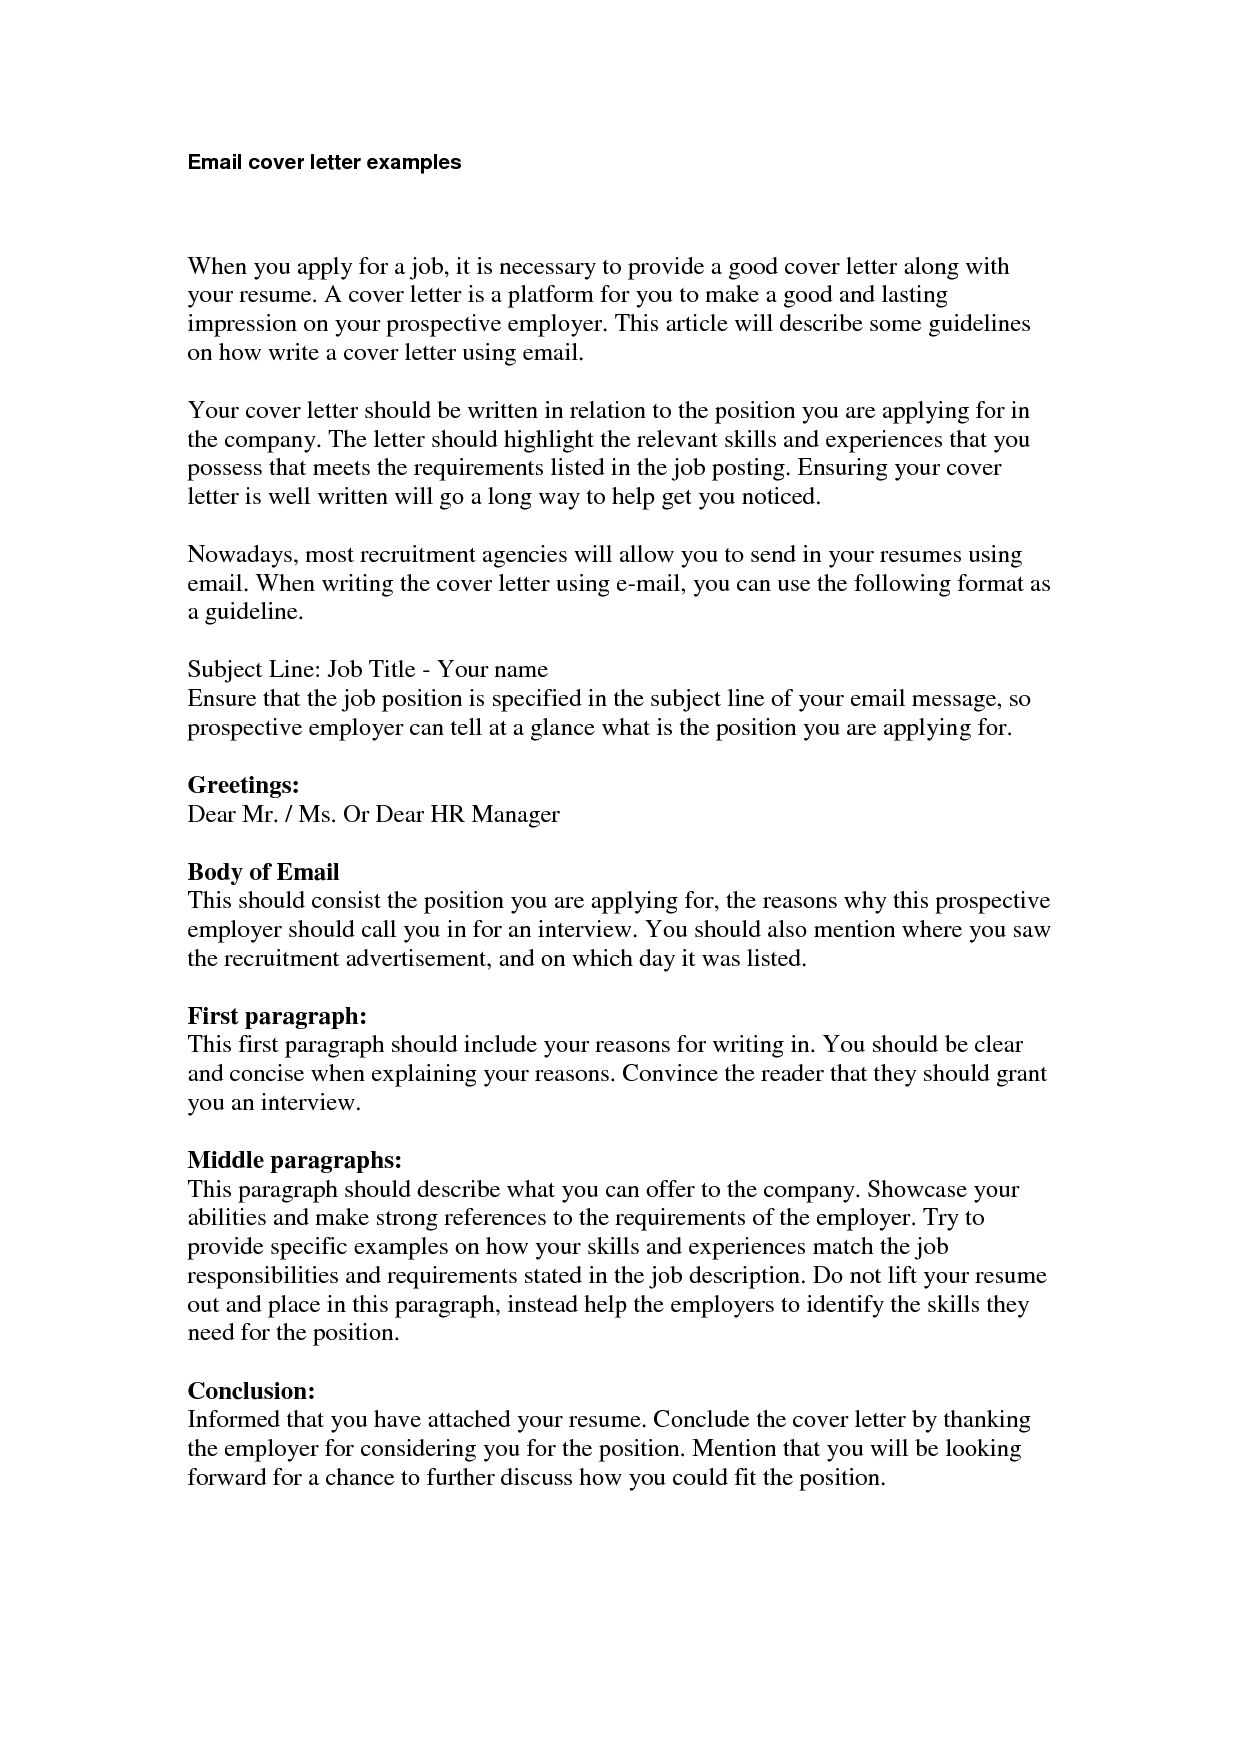 Email Resume Cover Letter Template Resume Builder Templates